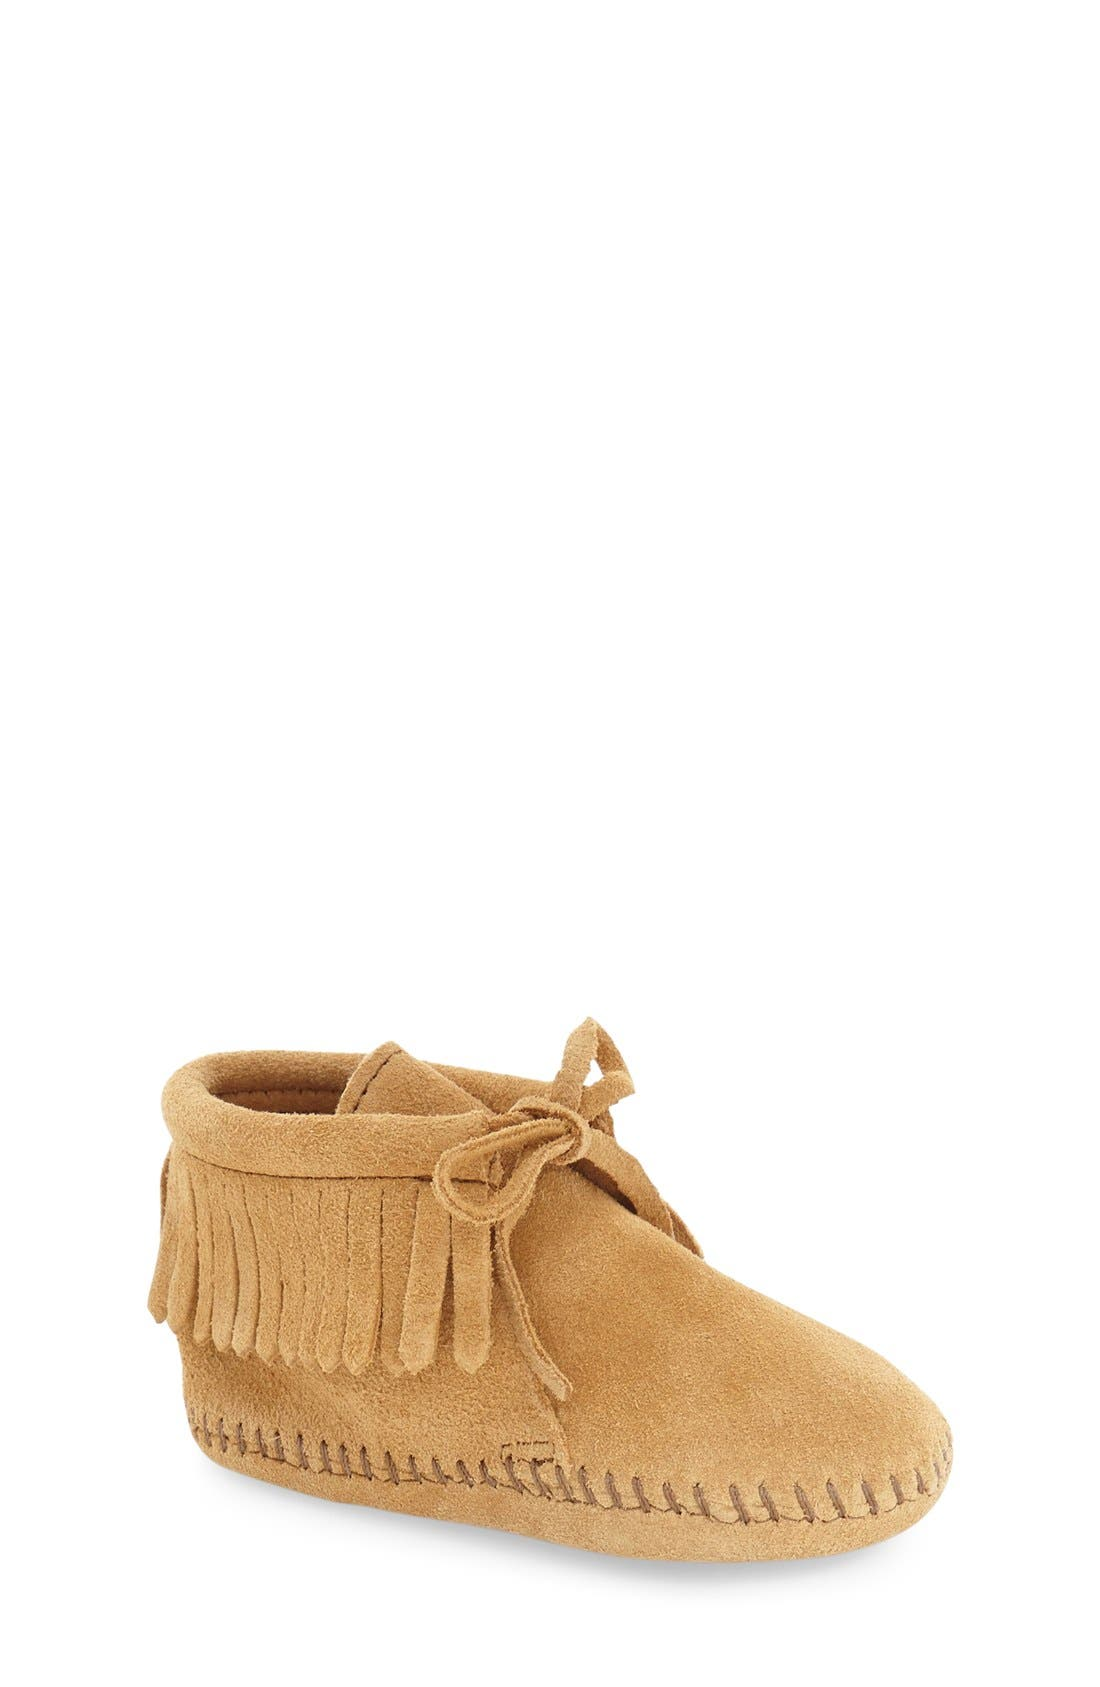 Fringe Bootie,                             Main thumbnail 1, color,                             Tan Suede